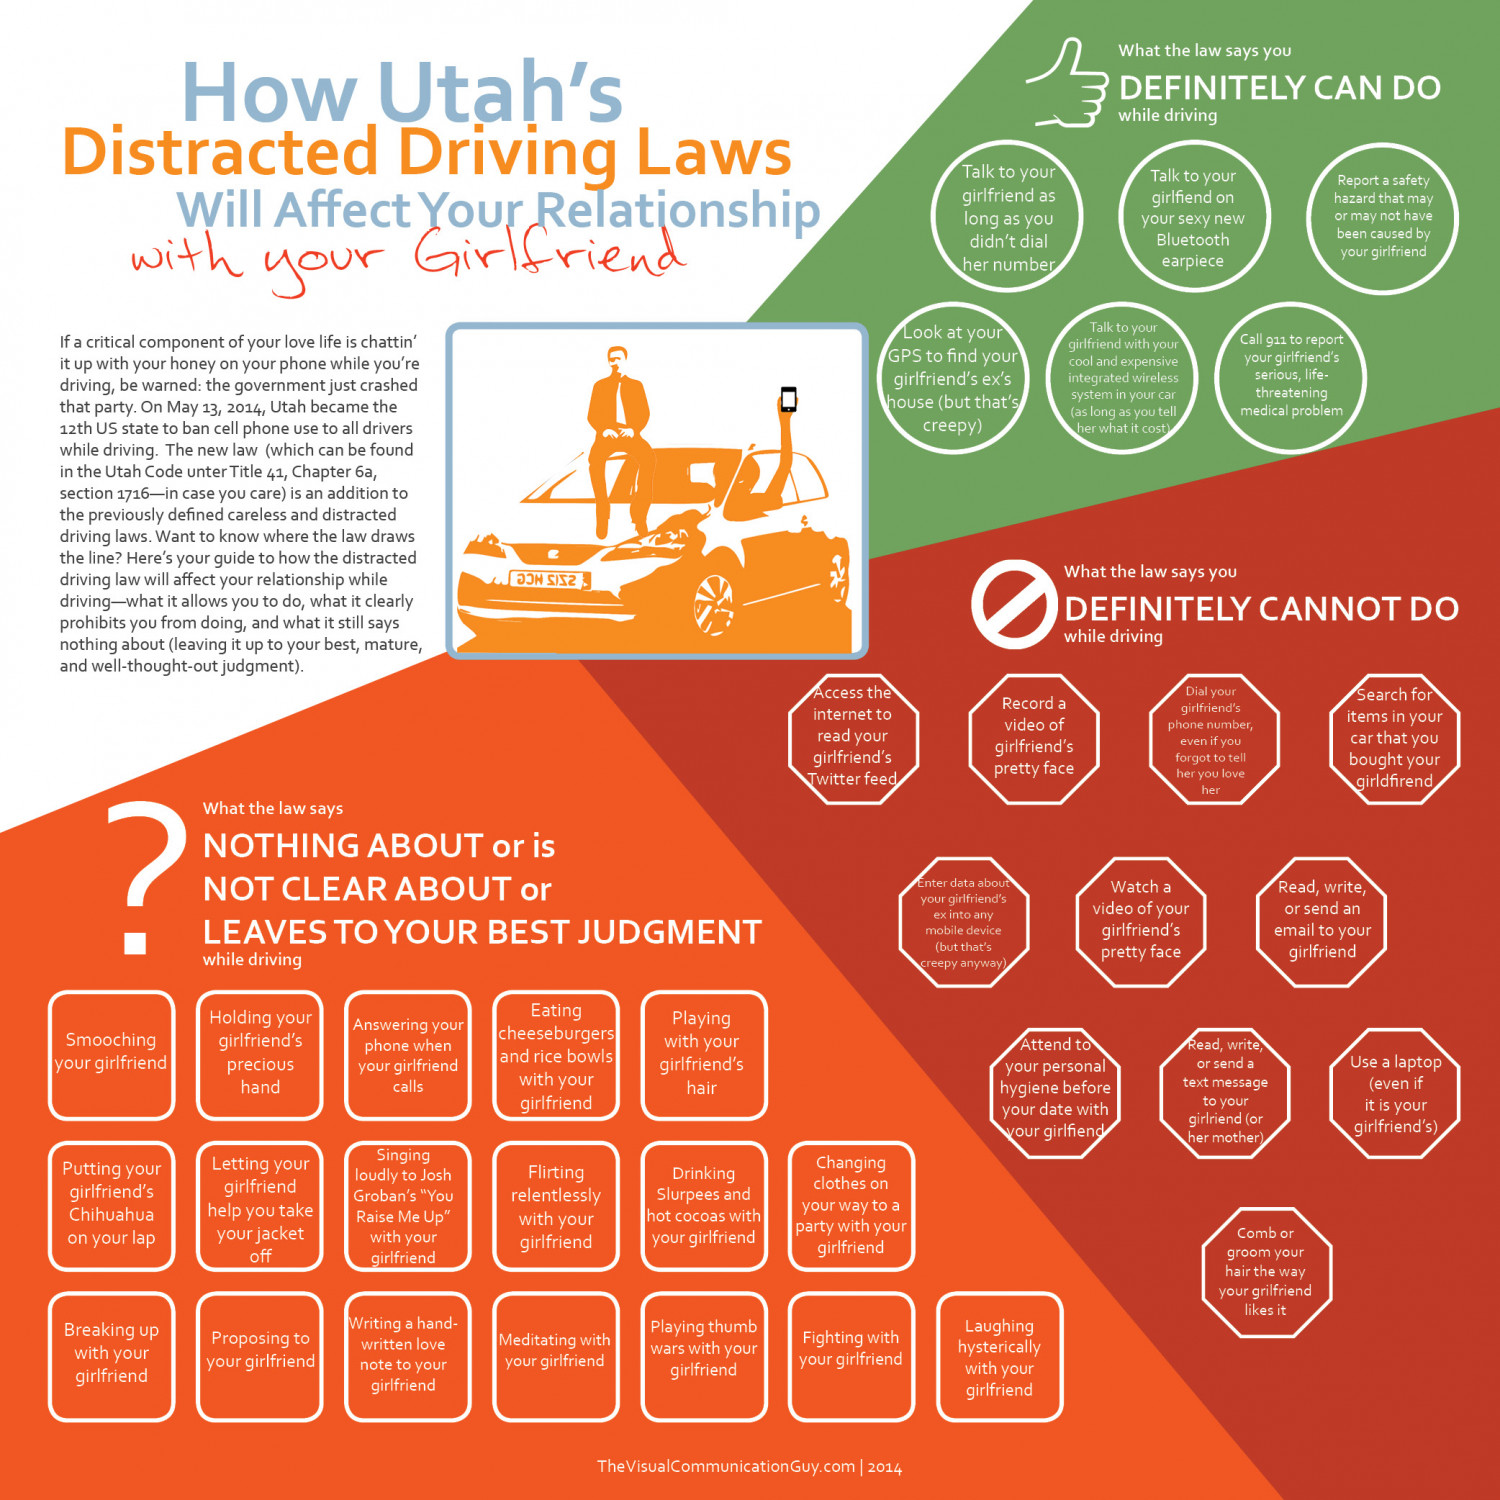 How Utah's Distracted Driving Laws Will Affect Your Relationship with Your Girlfriend Infographic